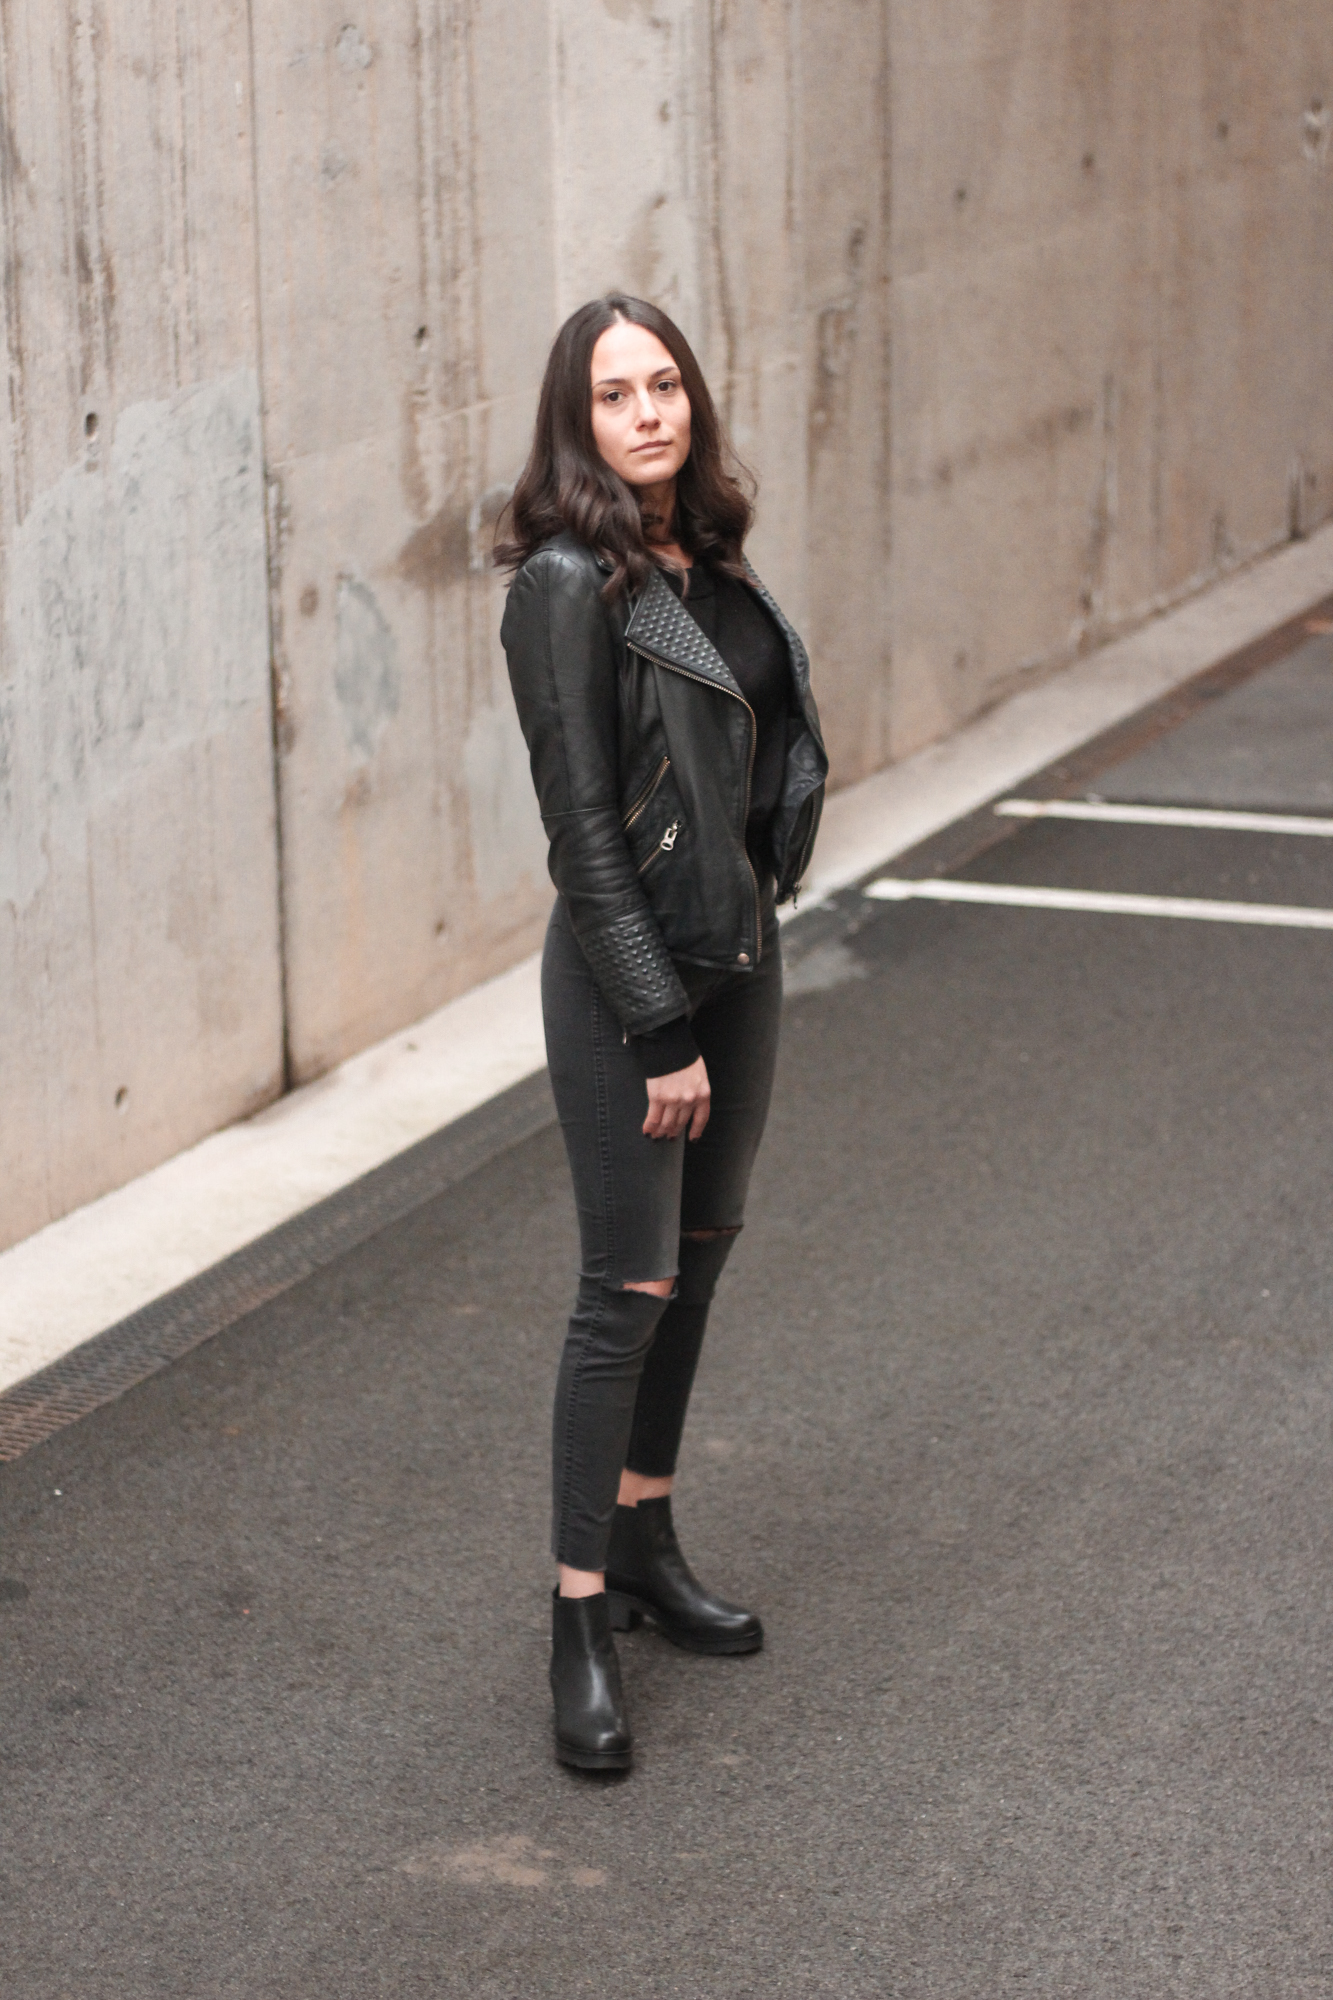 autumn essentials, Zara studded leather jacket, leather ankle boots Zign by Bulgarian fashion blogger Michaella from Quite a Looker